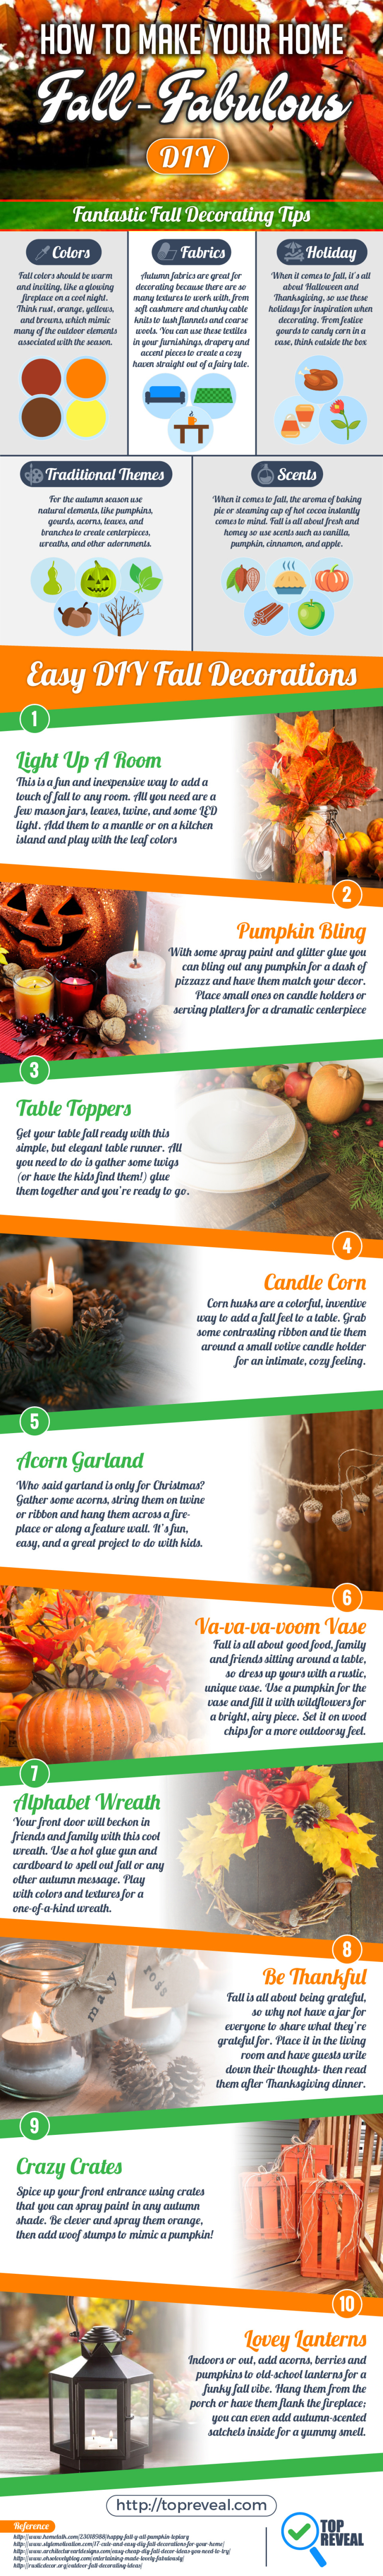 Fall Decorating Ideas Infographic